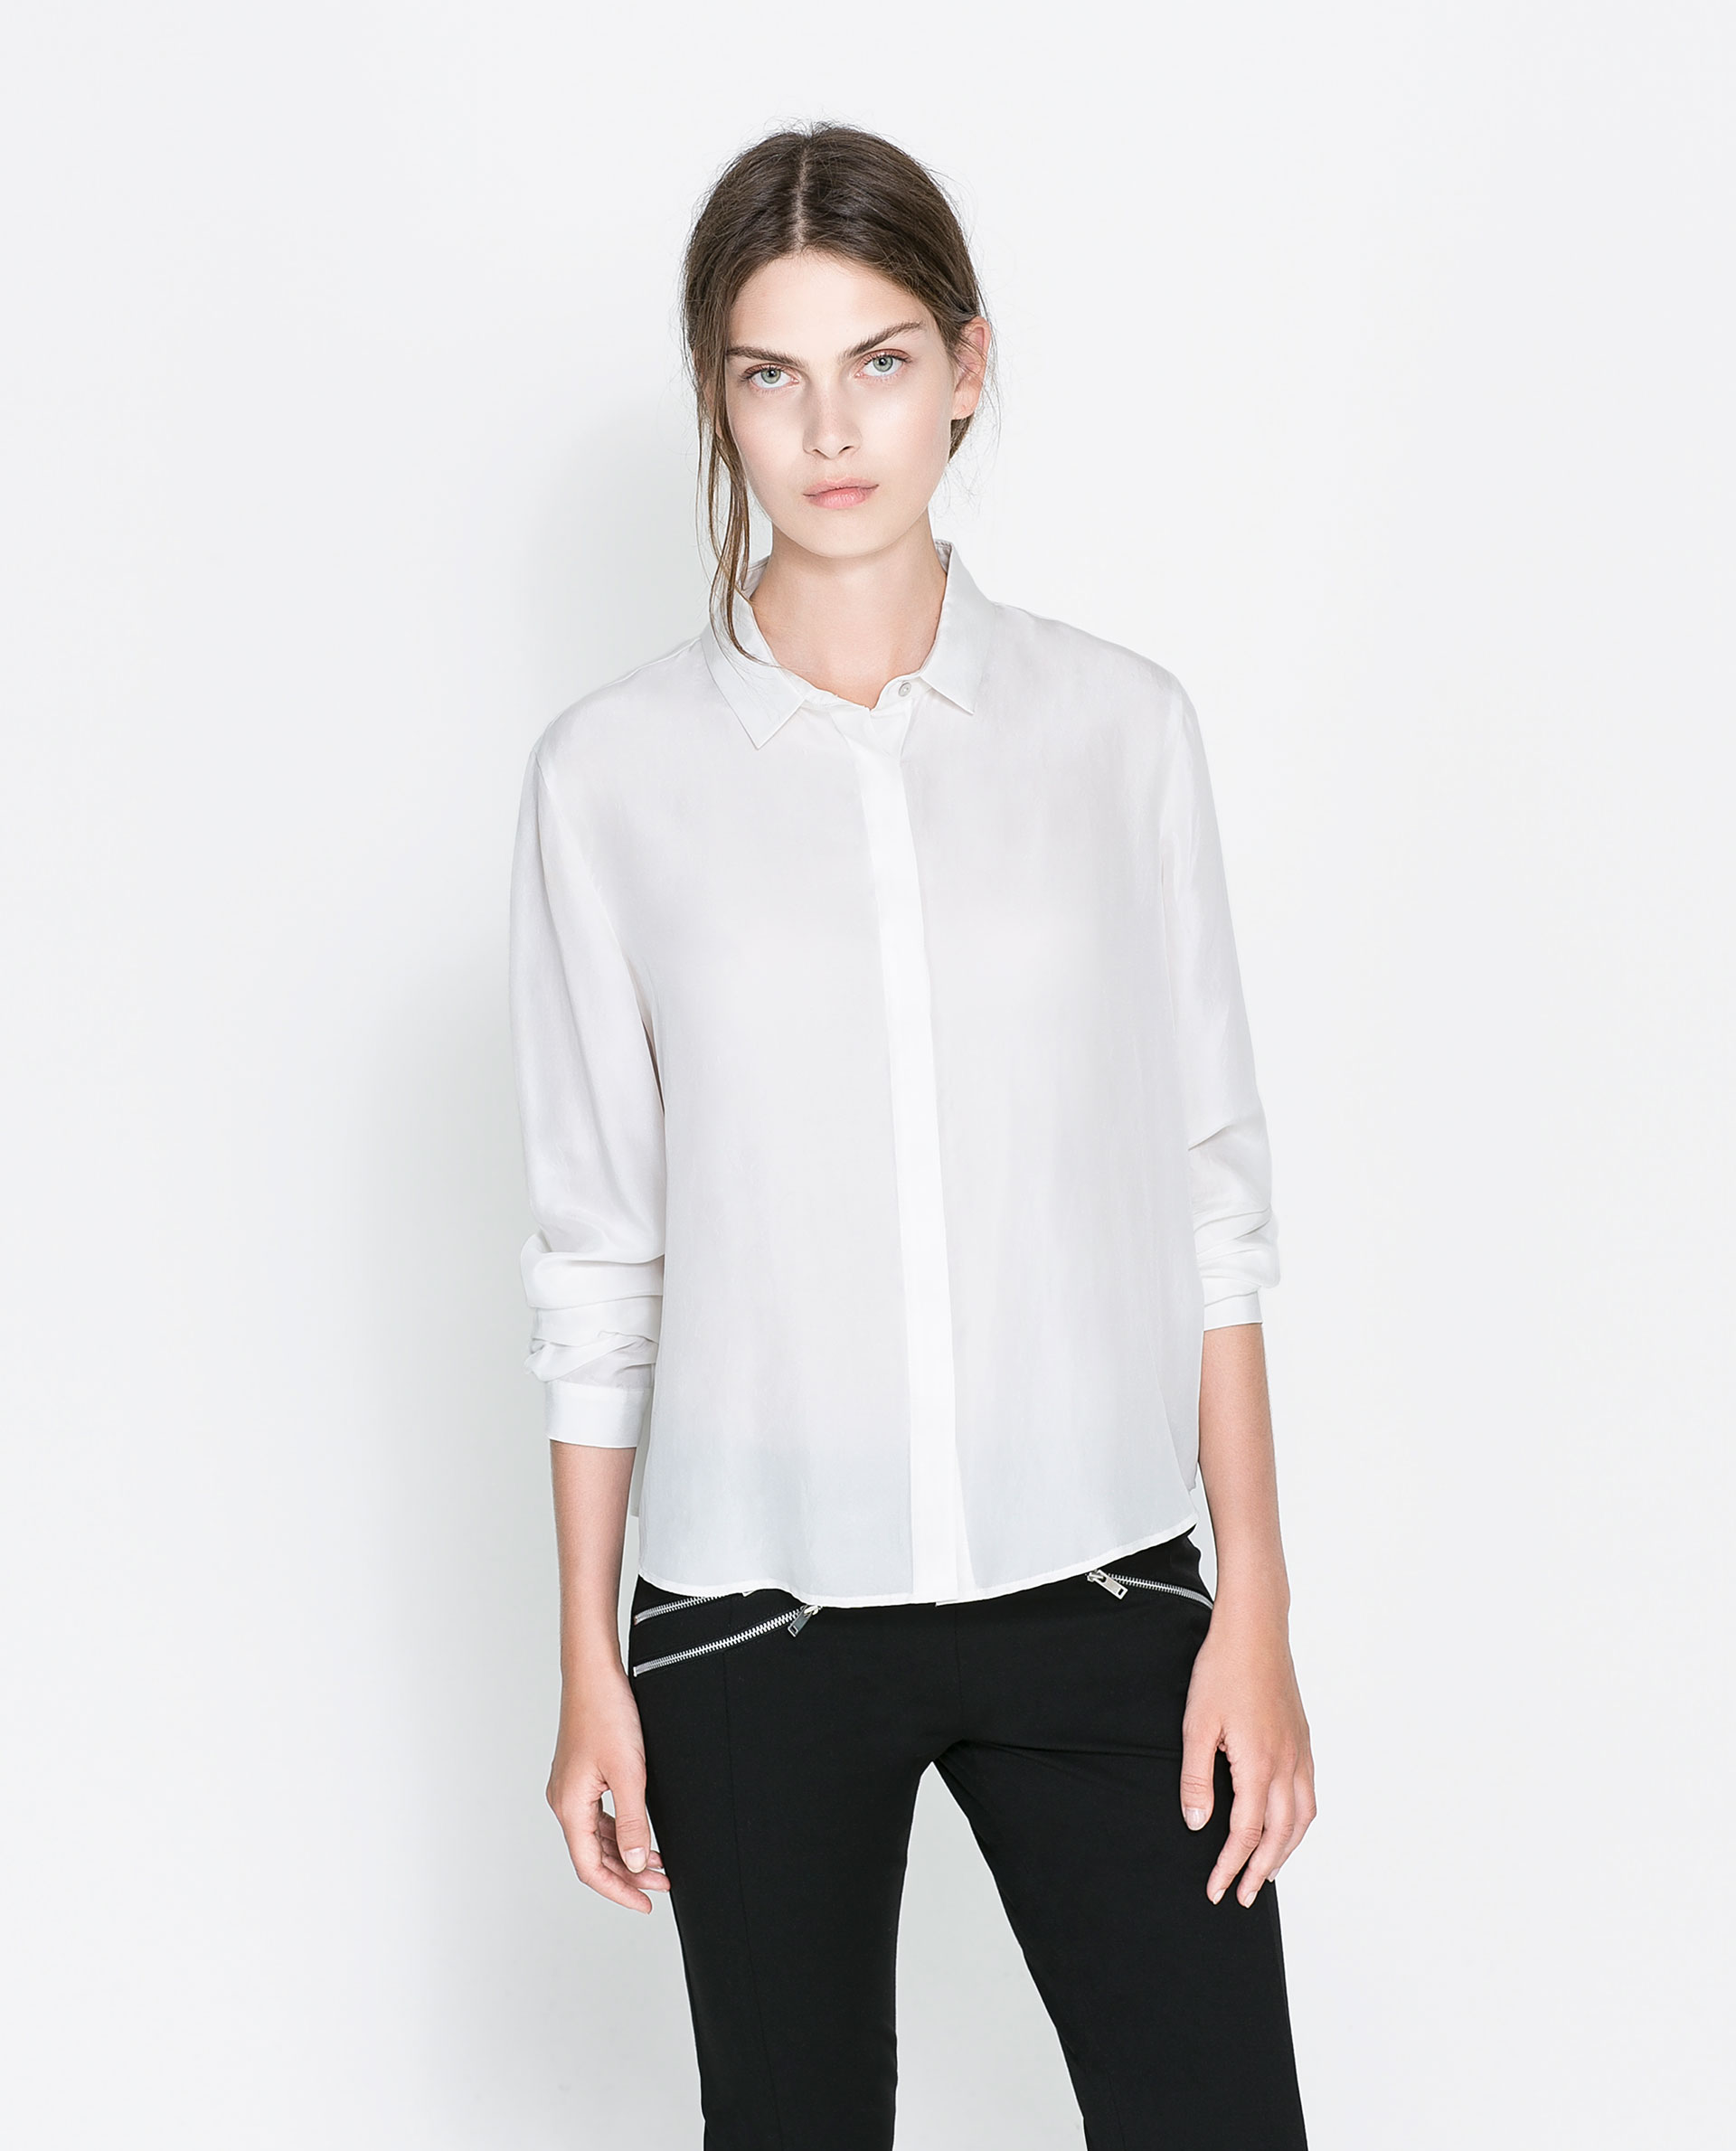 Zara White Silk Blouse 83